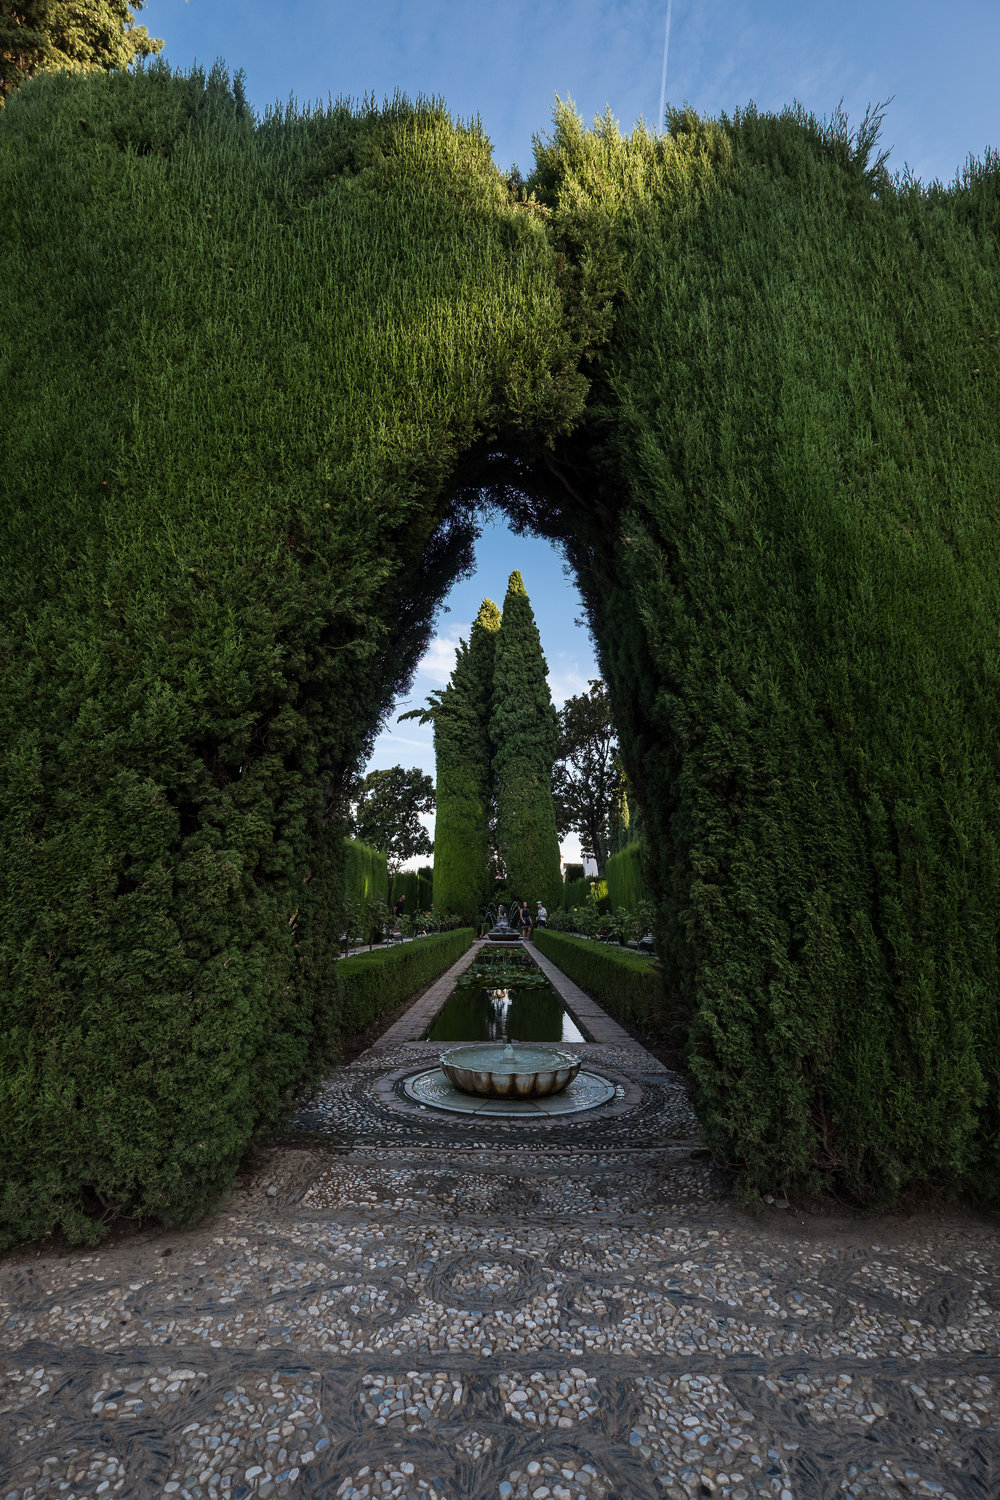 lower gardens at Generalife